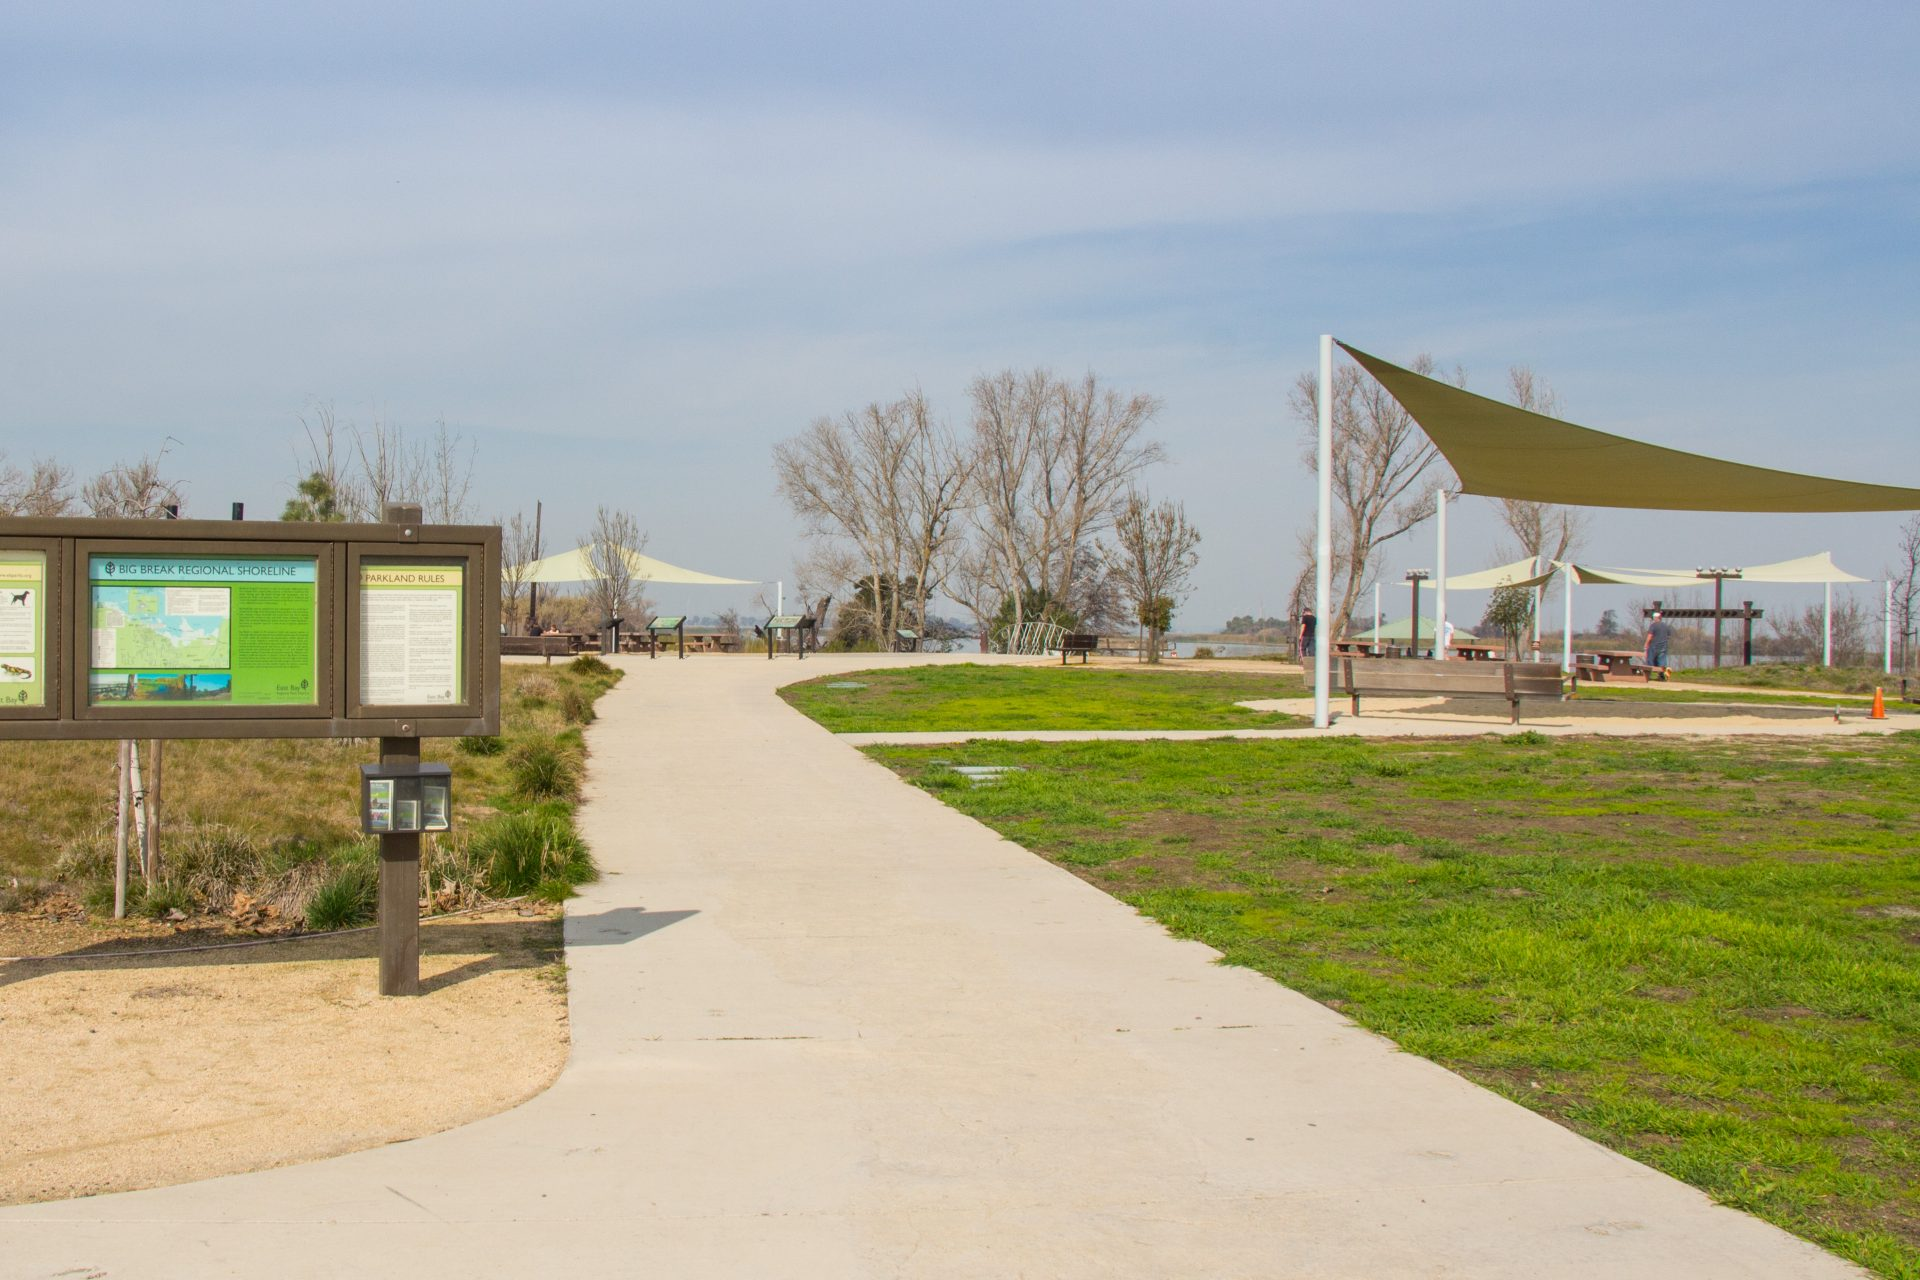 path with sign kiosk on left and shade canopy on right